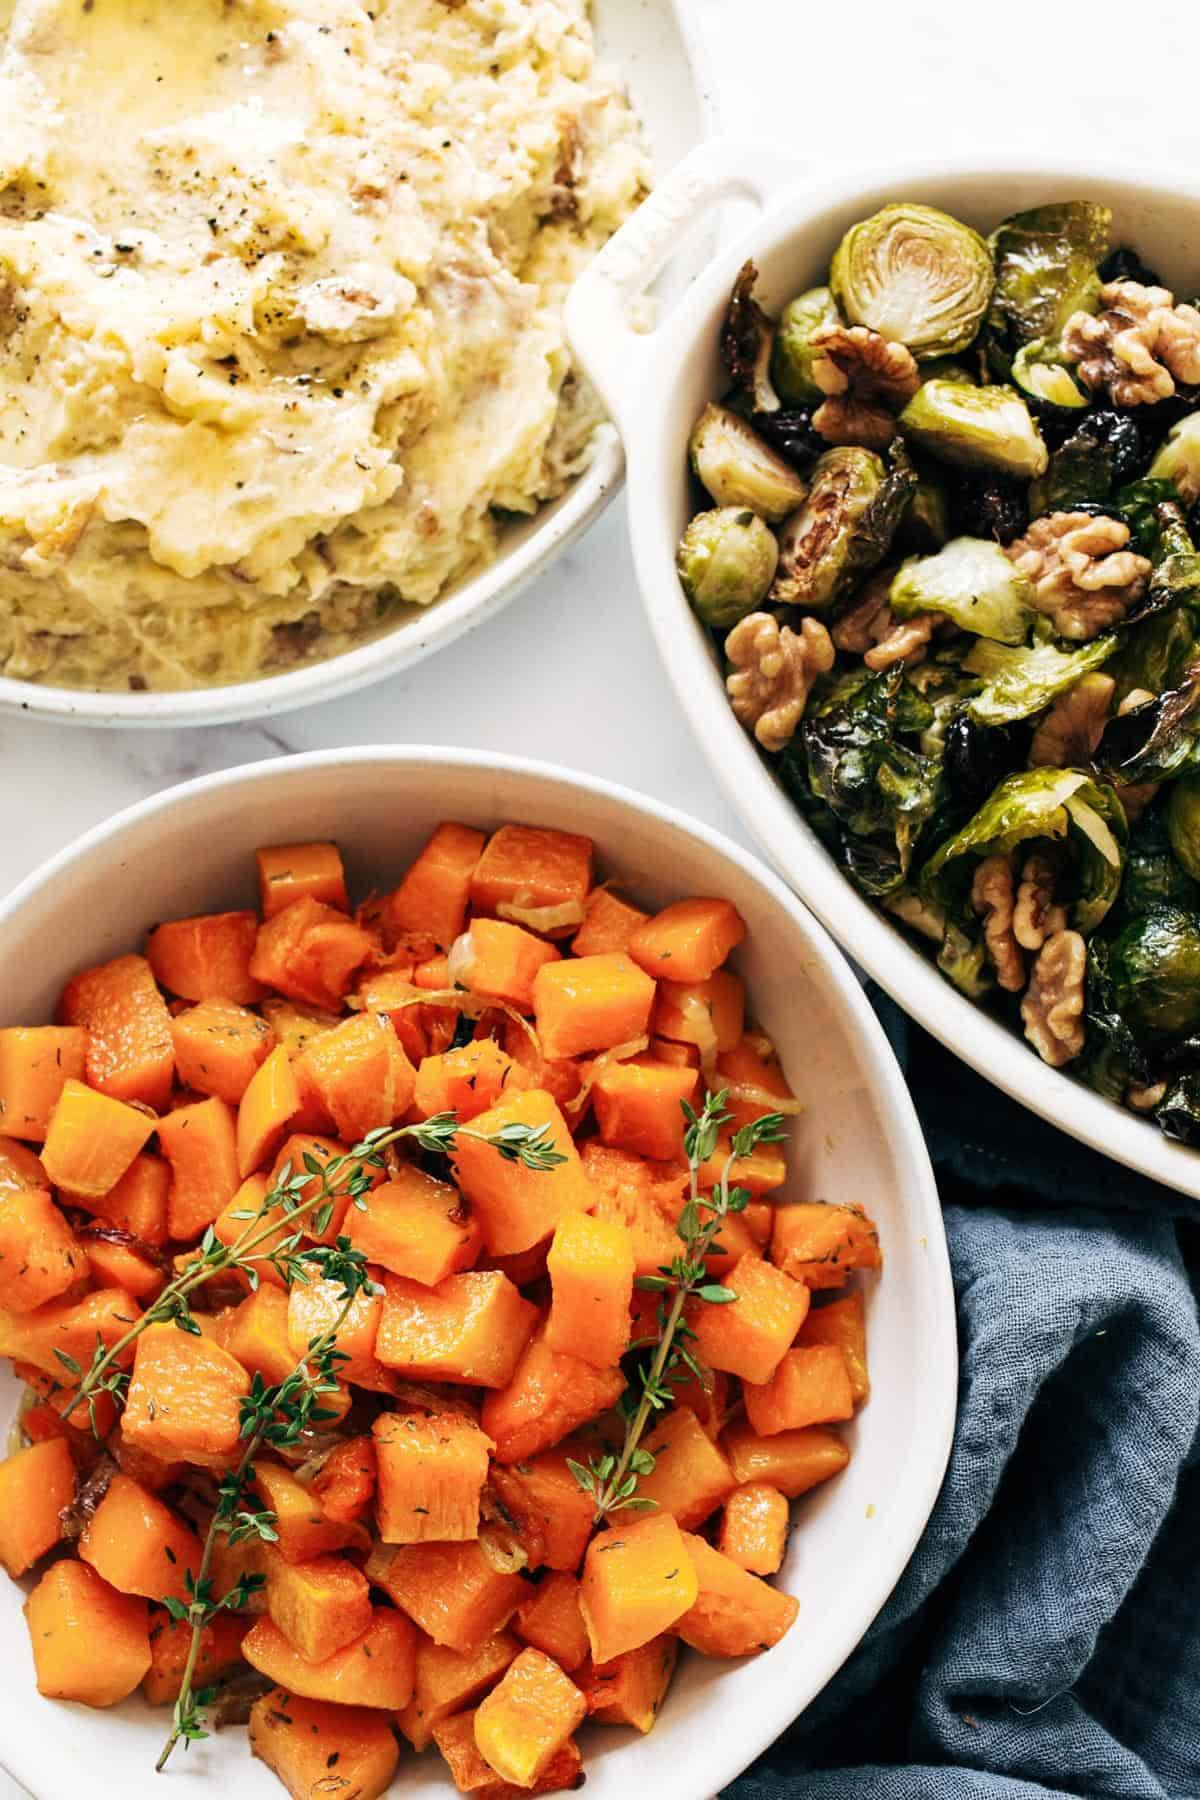 Mashed potatoes, brussels sprouts, and herbed squash in bowls.